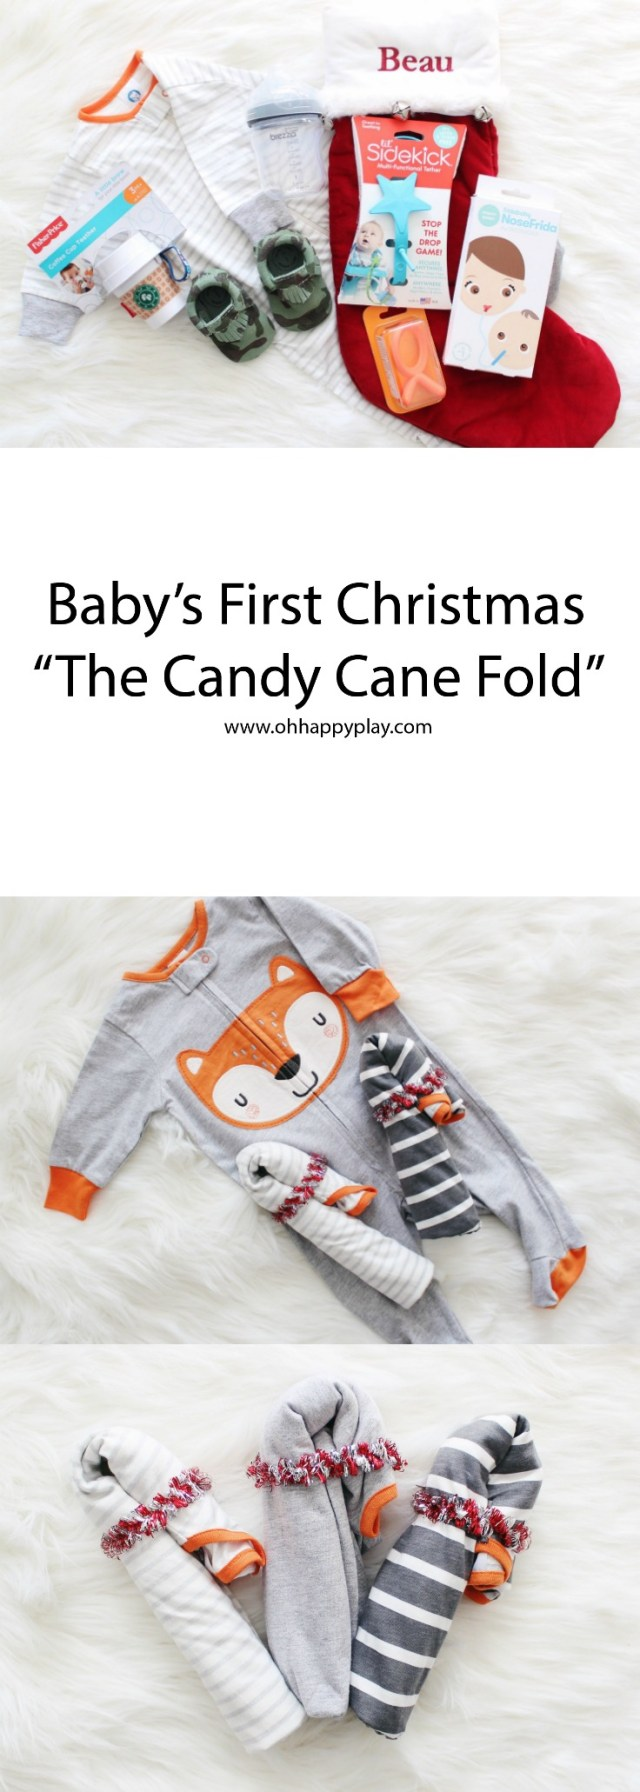 The perfect essentials you need for your Baby's First Christmas! Plus see how to fold onesies like a candy cane! Check it out!